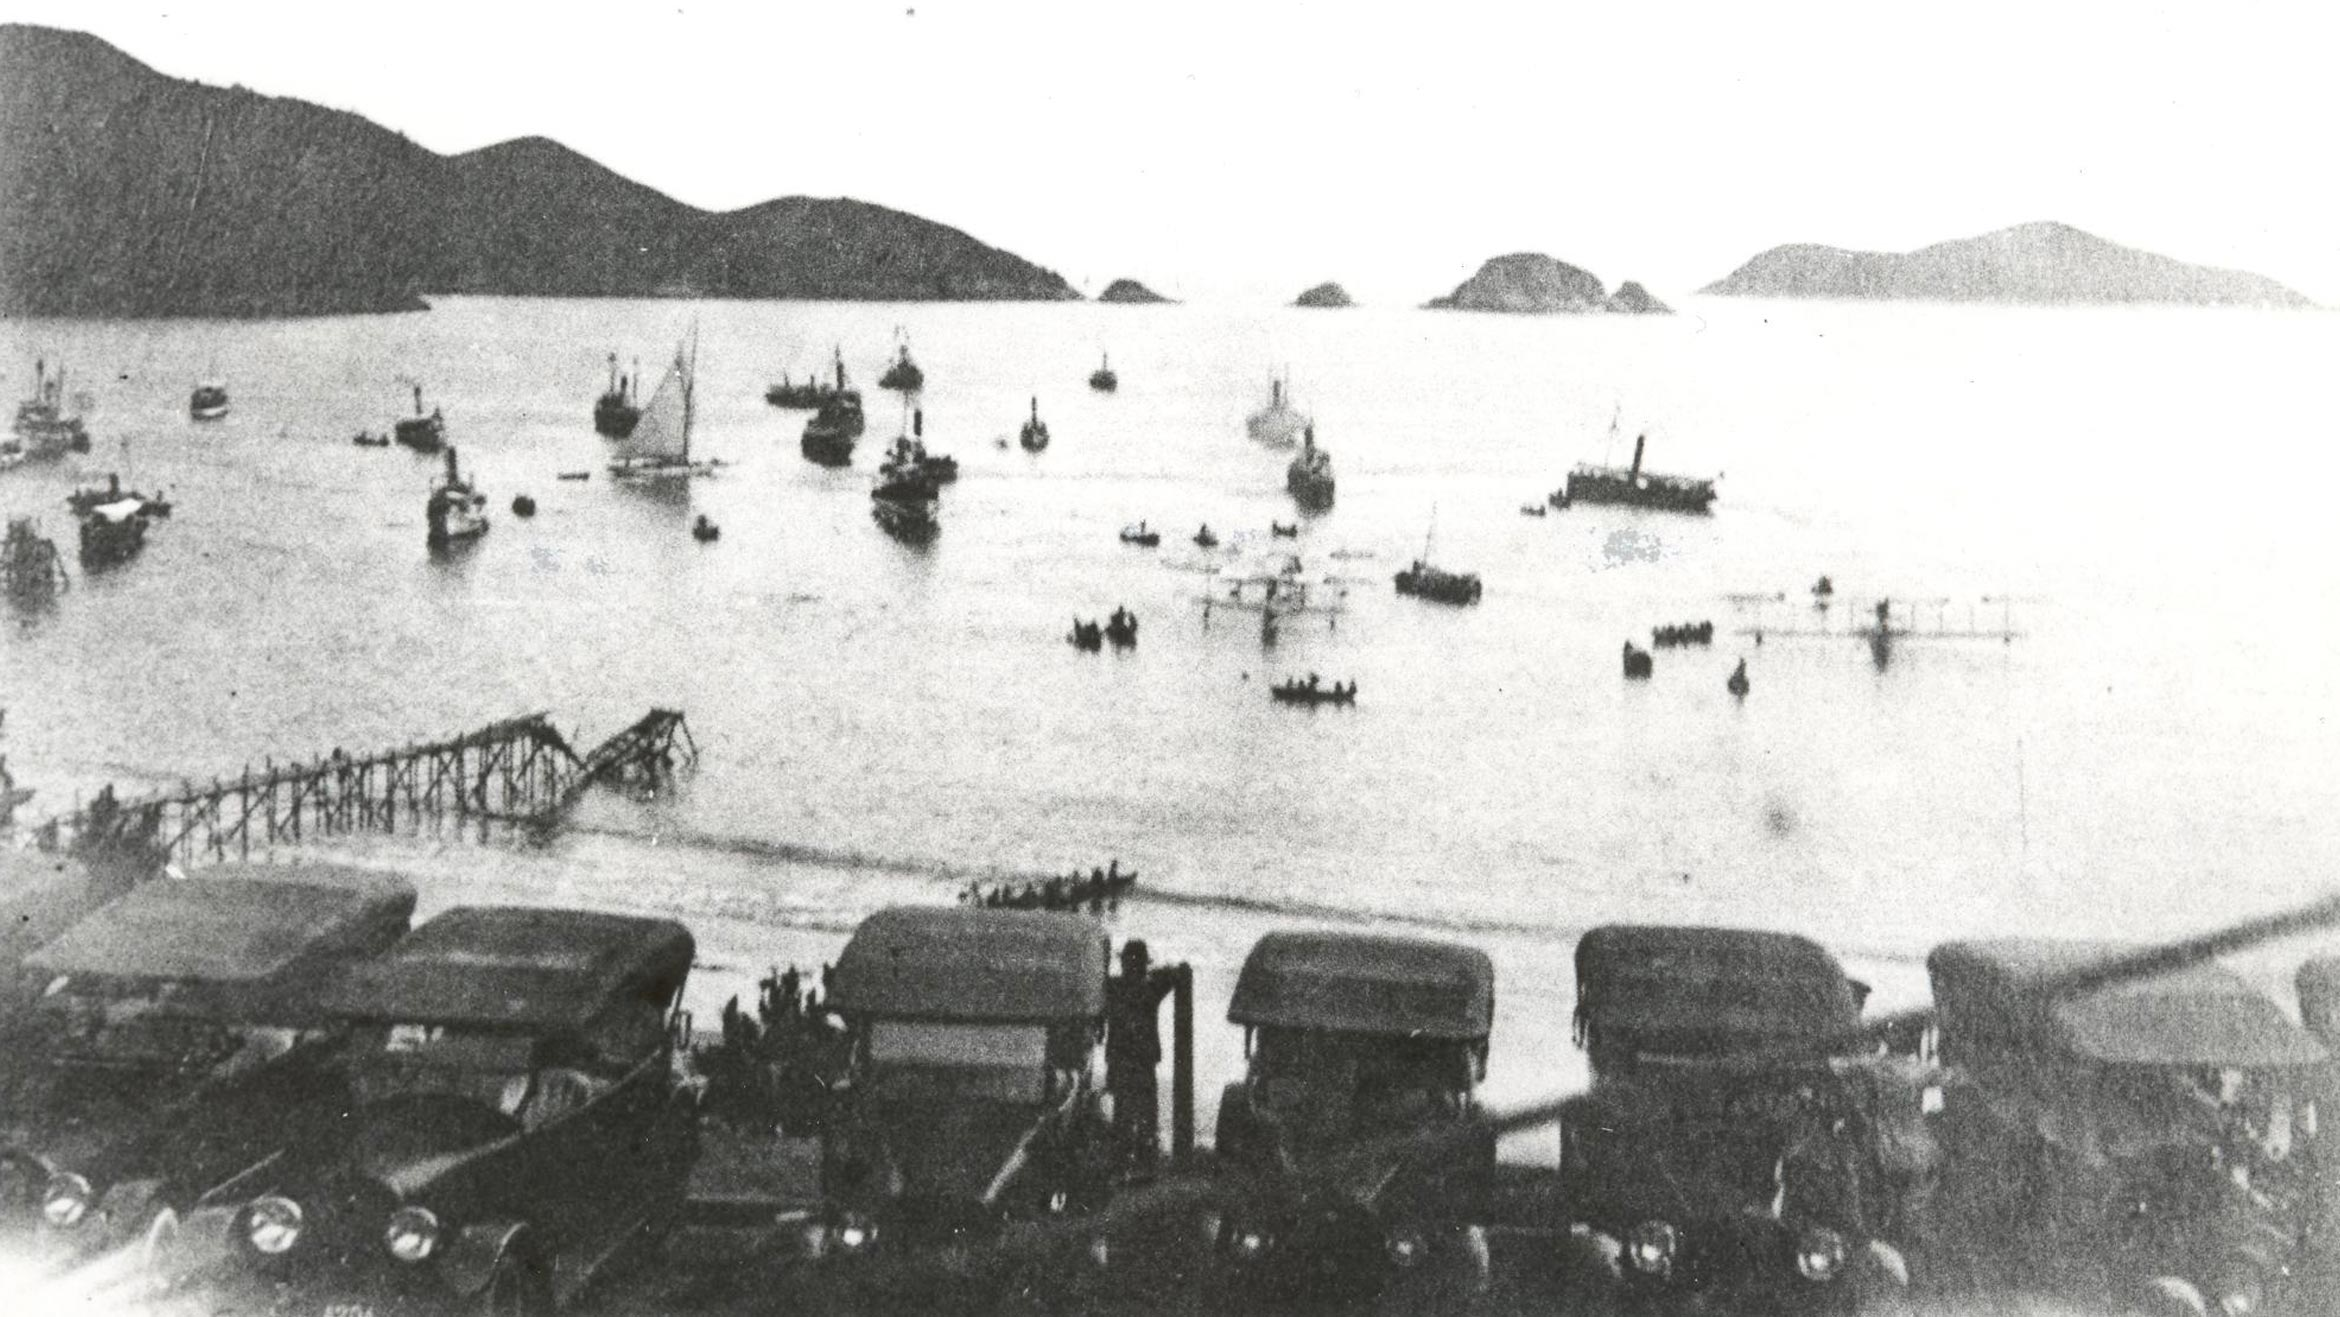 The Repulse Bay opened its doors in 1920